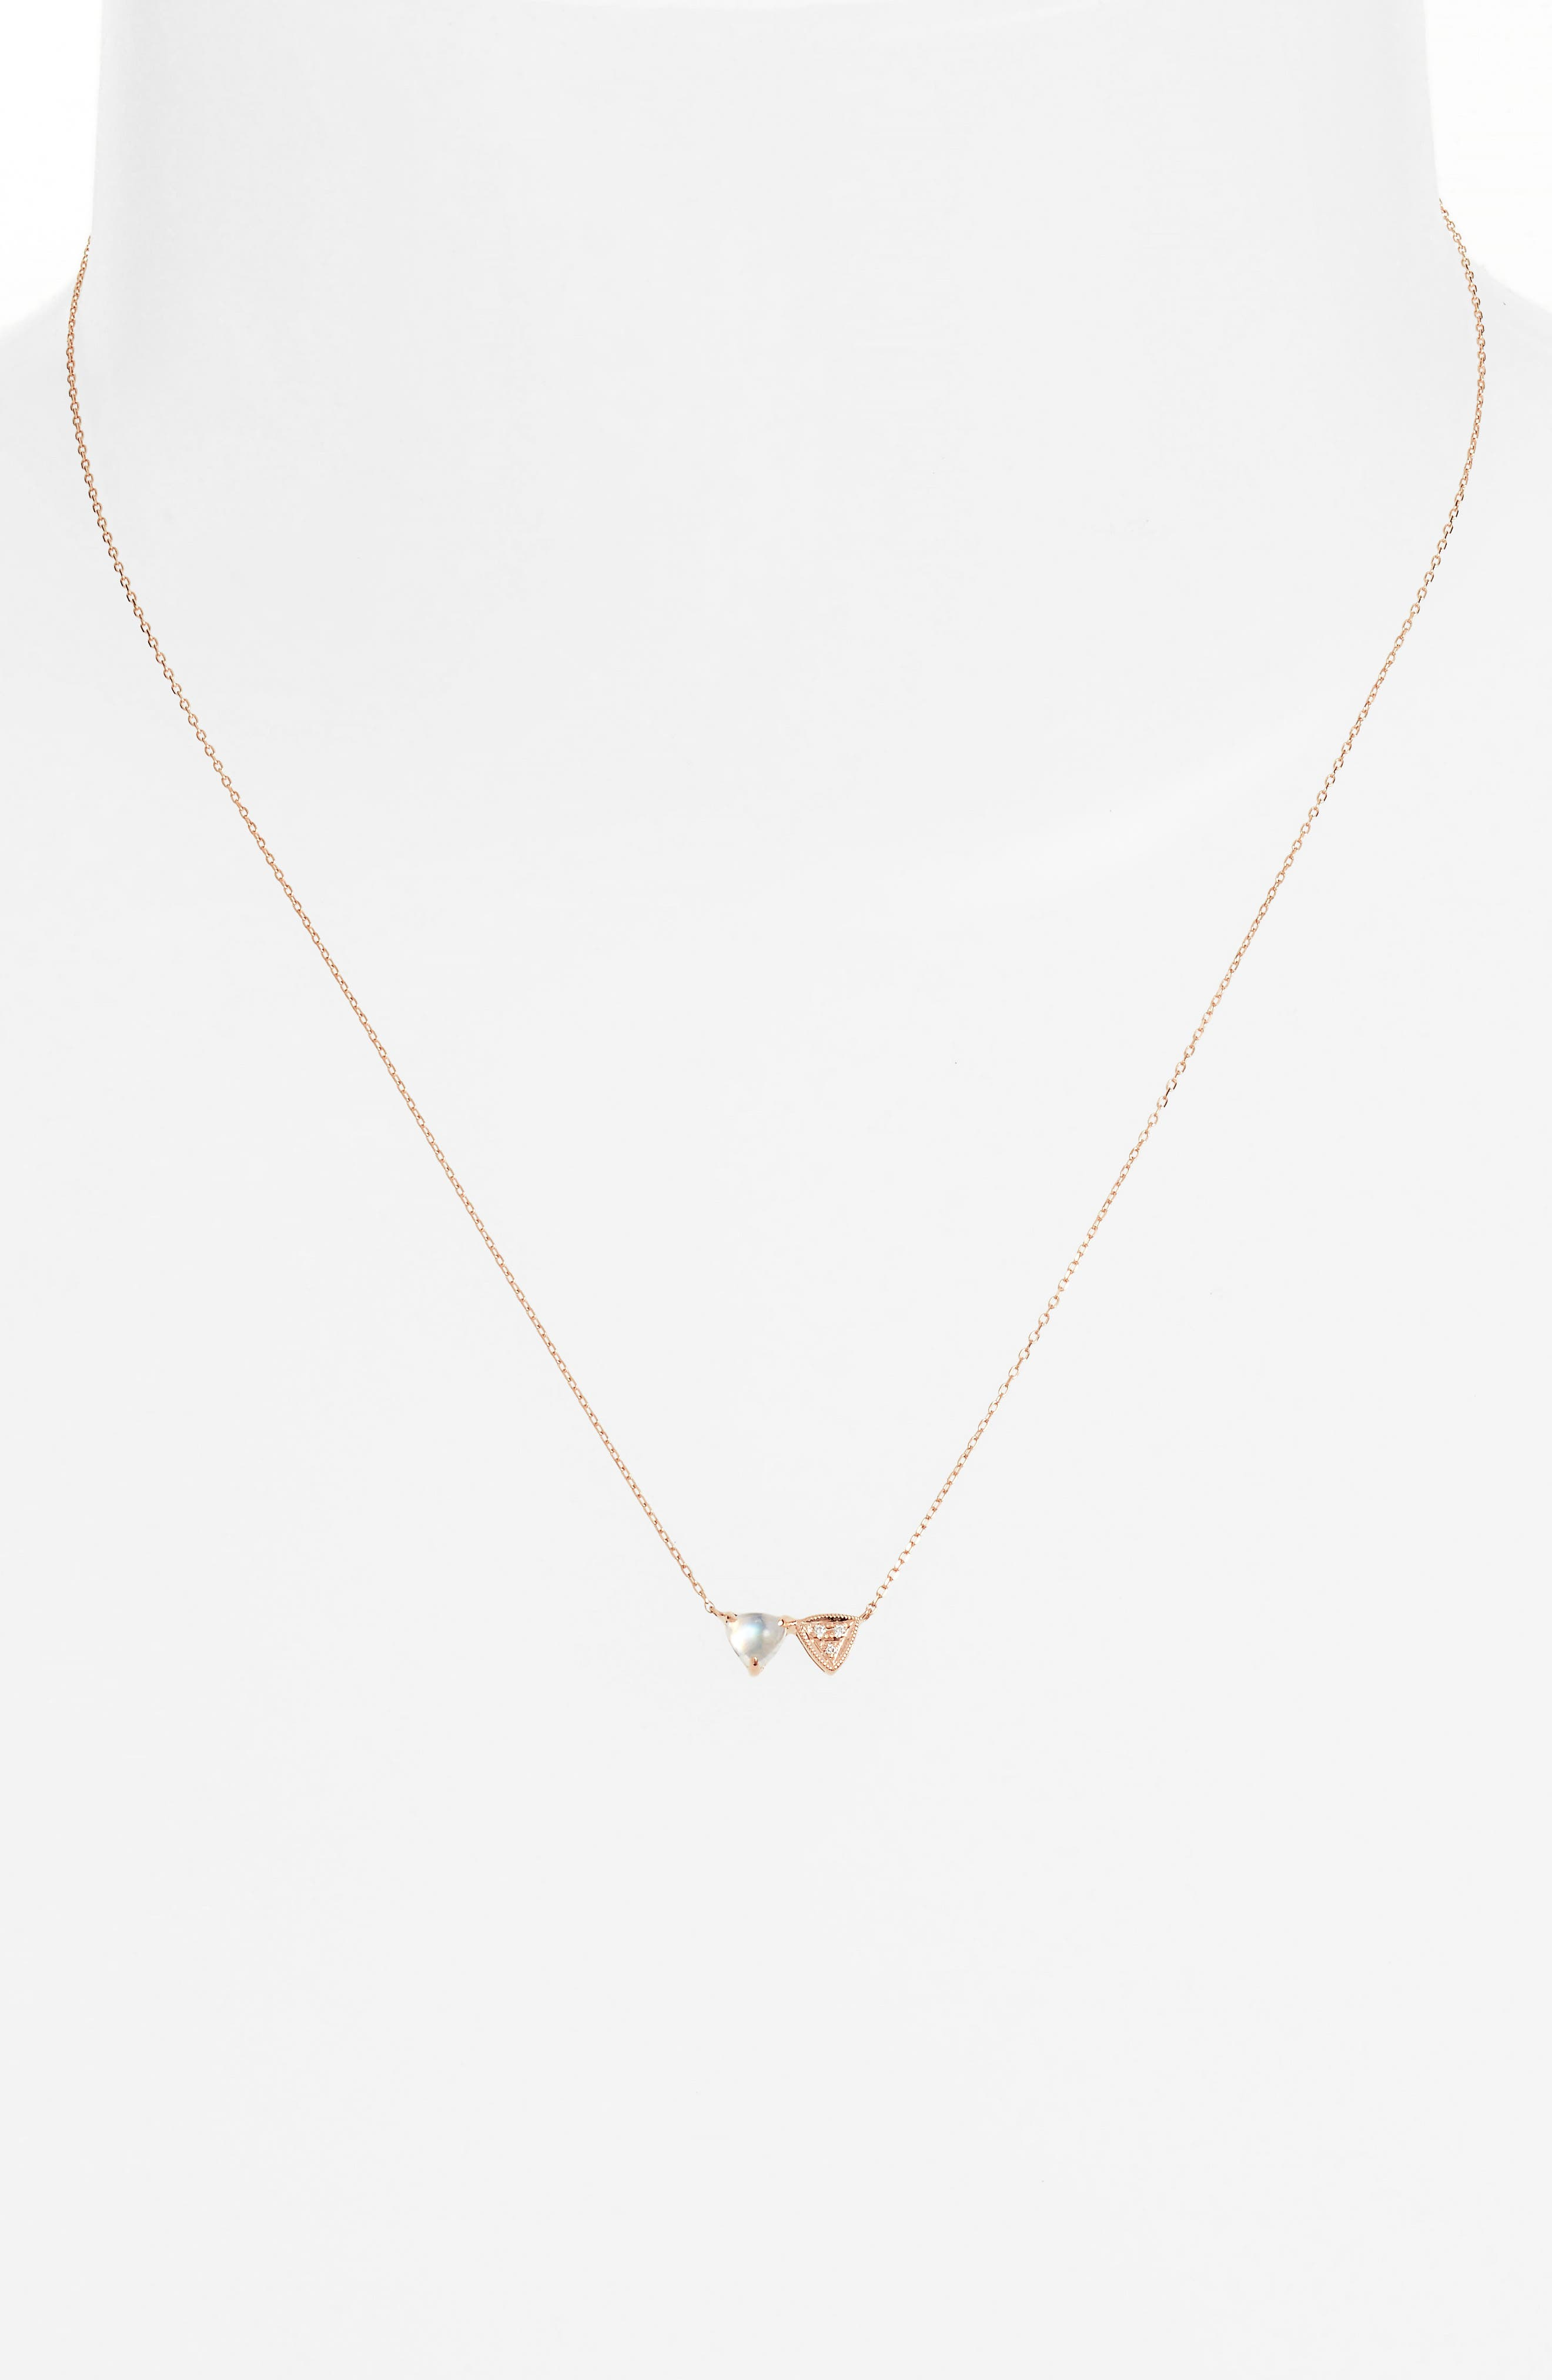 Diamond & Stone Pendant Necklace,                             Alternate thumbnail 2, color,                             Rose Gold